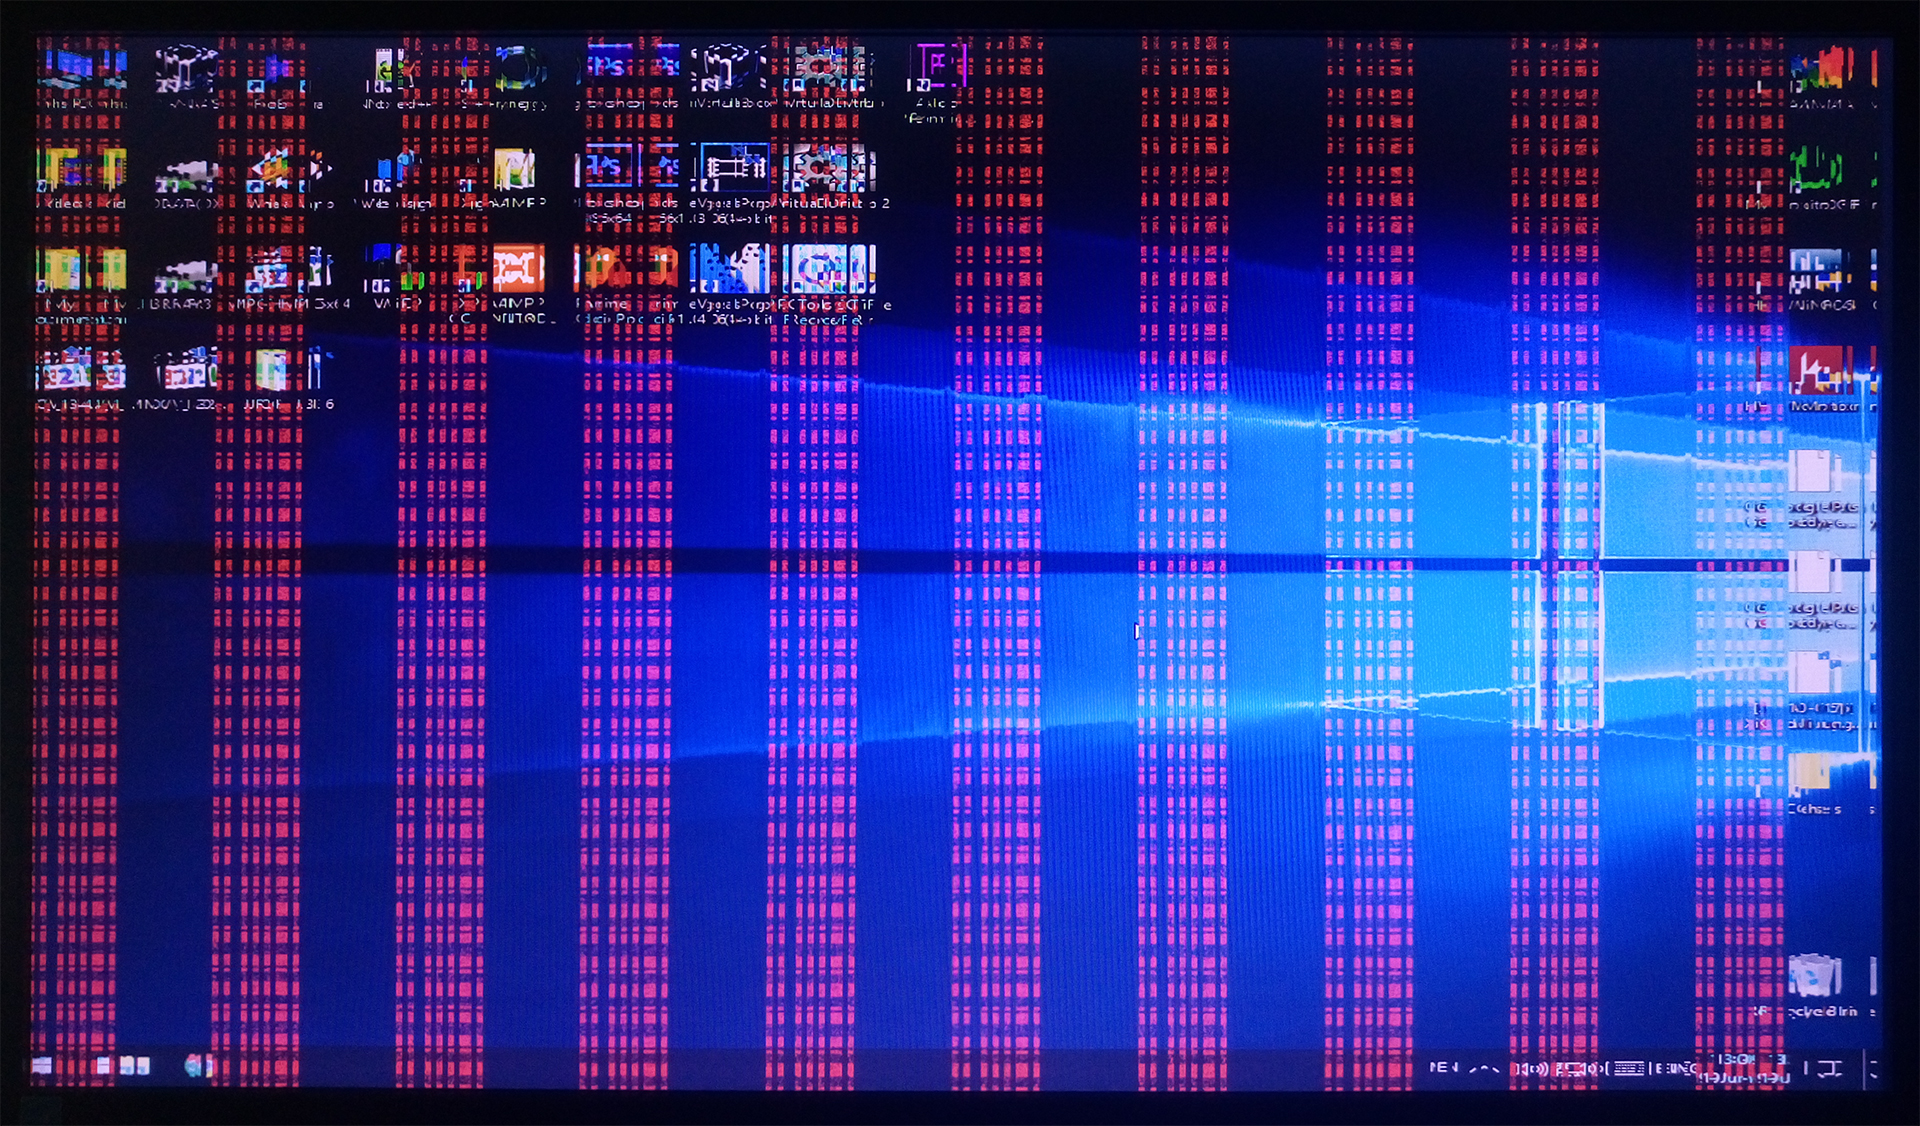 Malfunctioning Graphics Card with Vertical Stripe Lines and Image Artifacts Windows OS - How to Find If Your GPU is Dying | 5 Signs Explained